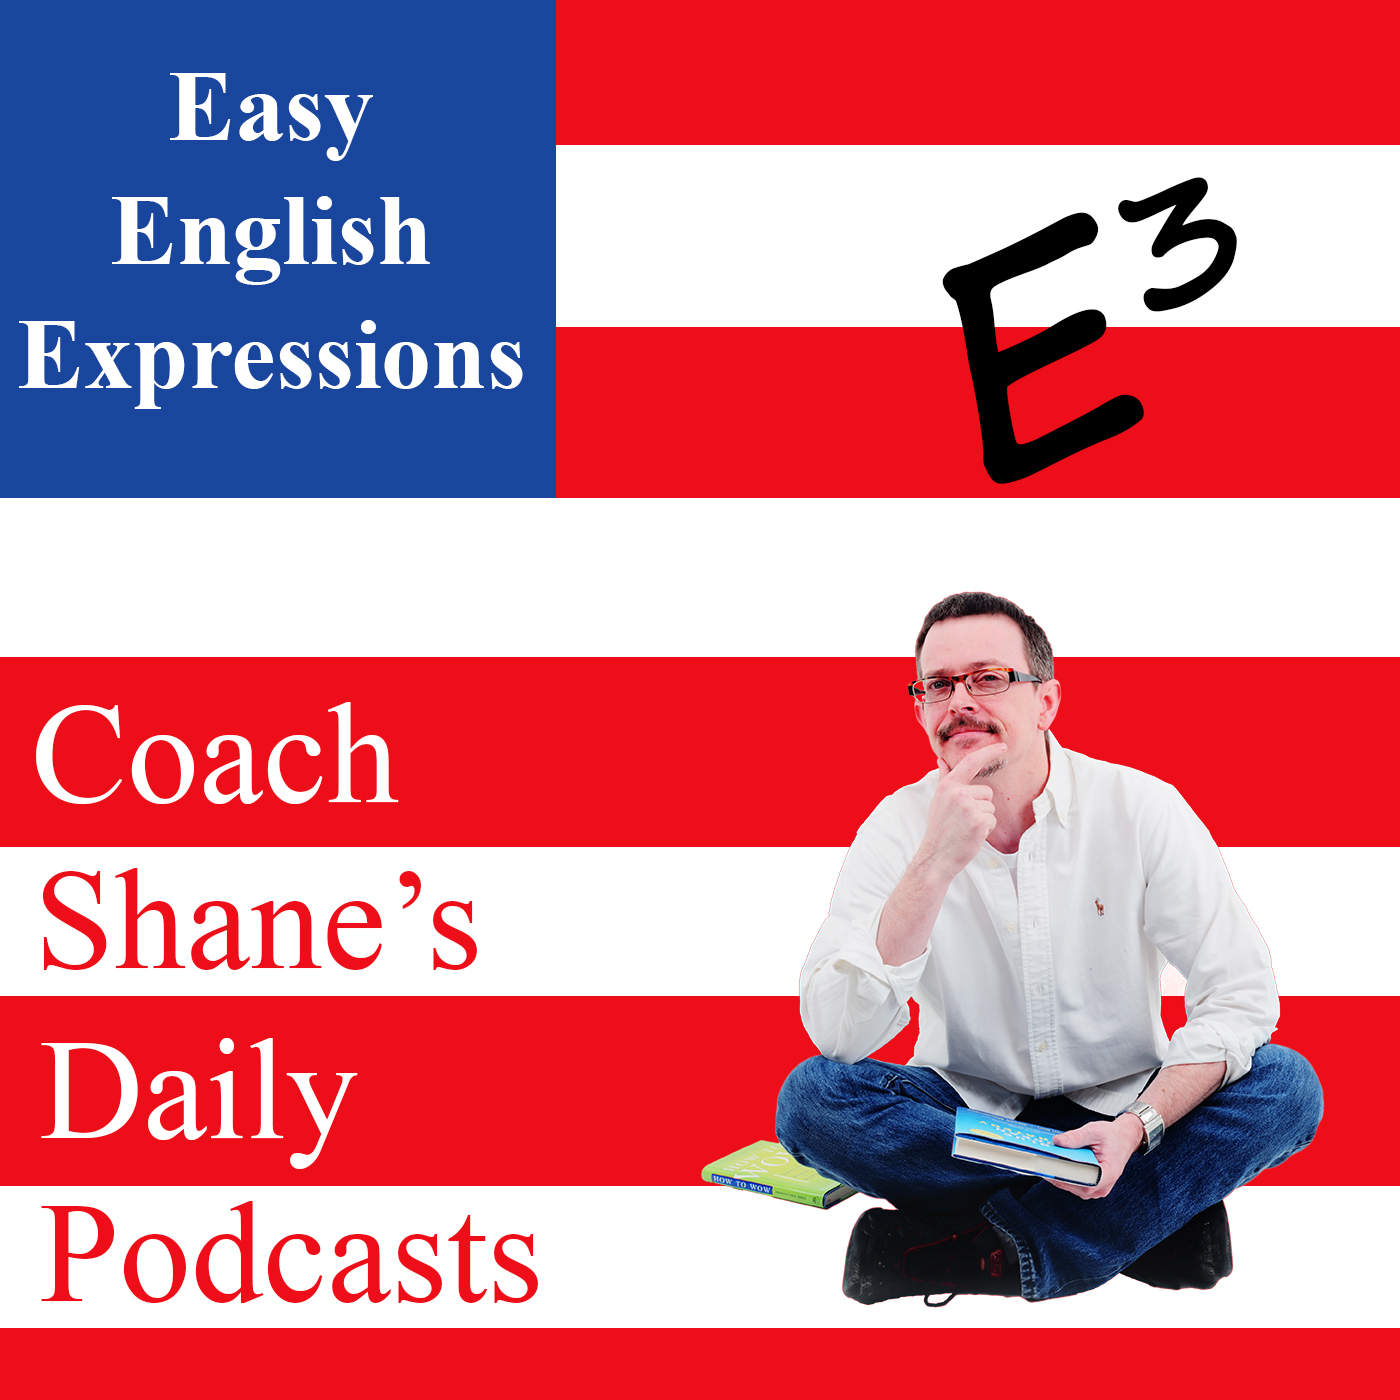 49 Daily Easy English Expression PODCAST—Kick it up a notch!